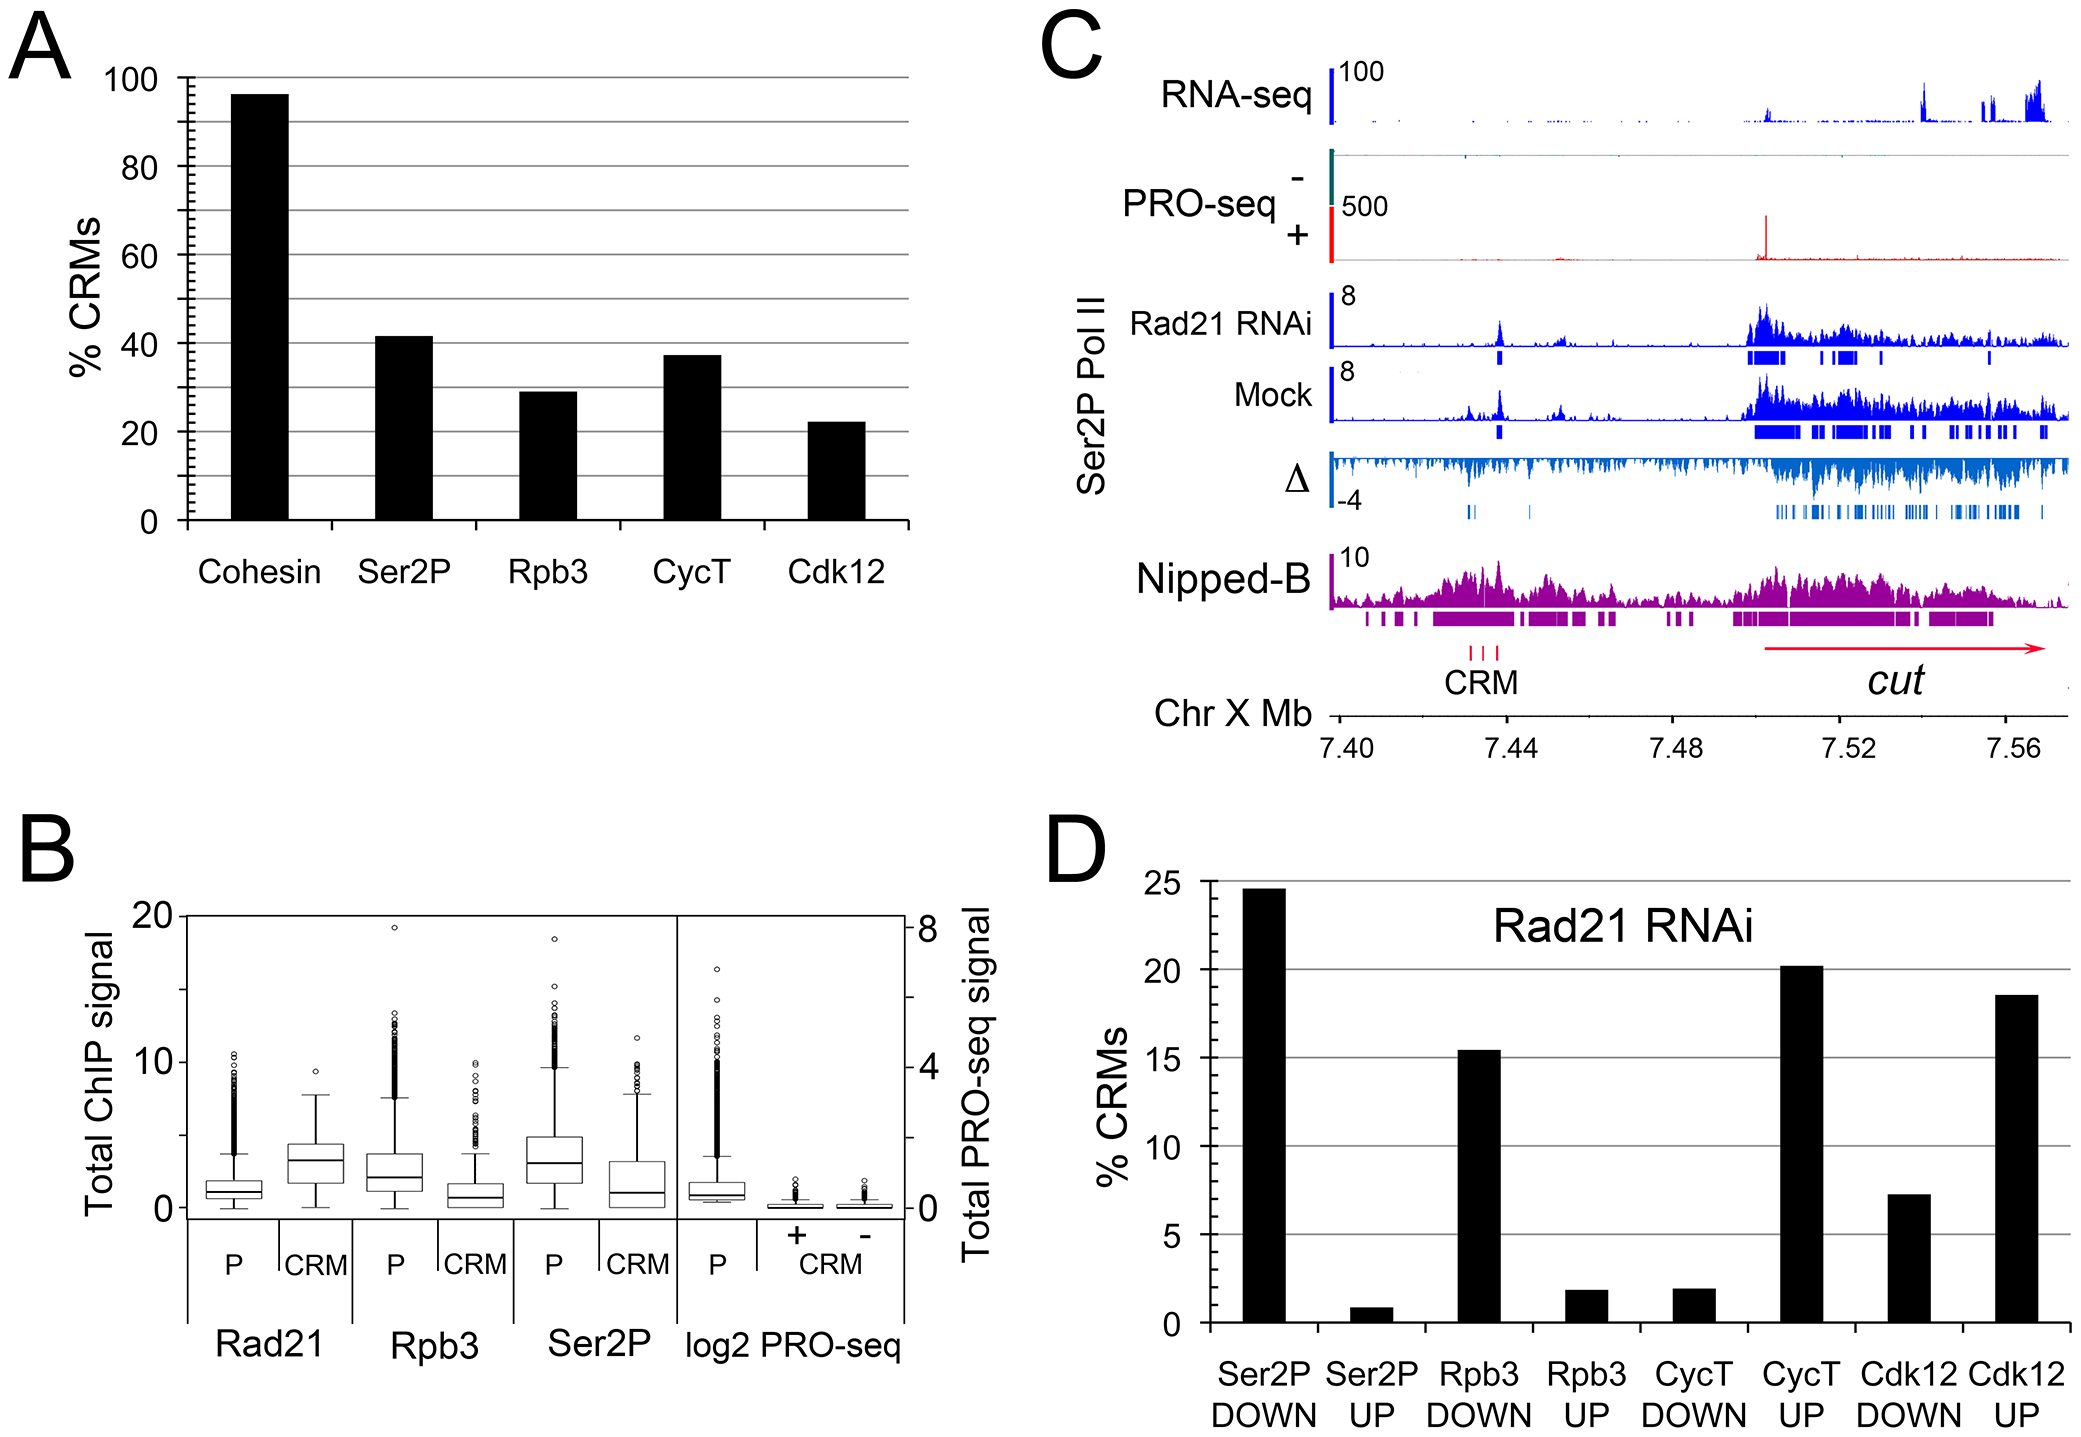 Cohesin binds nearly all predicted extragenic cis-regulatory modules (CRMs) in BG3 cells.